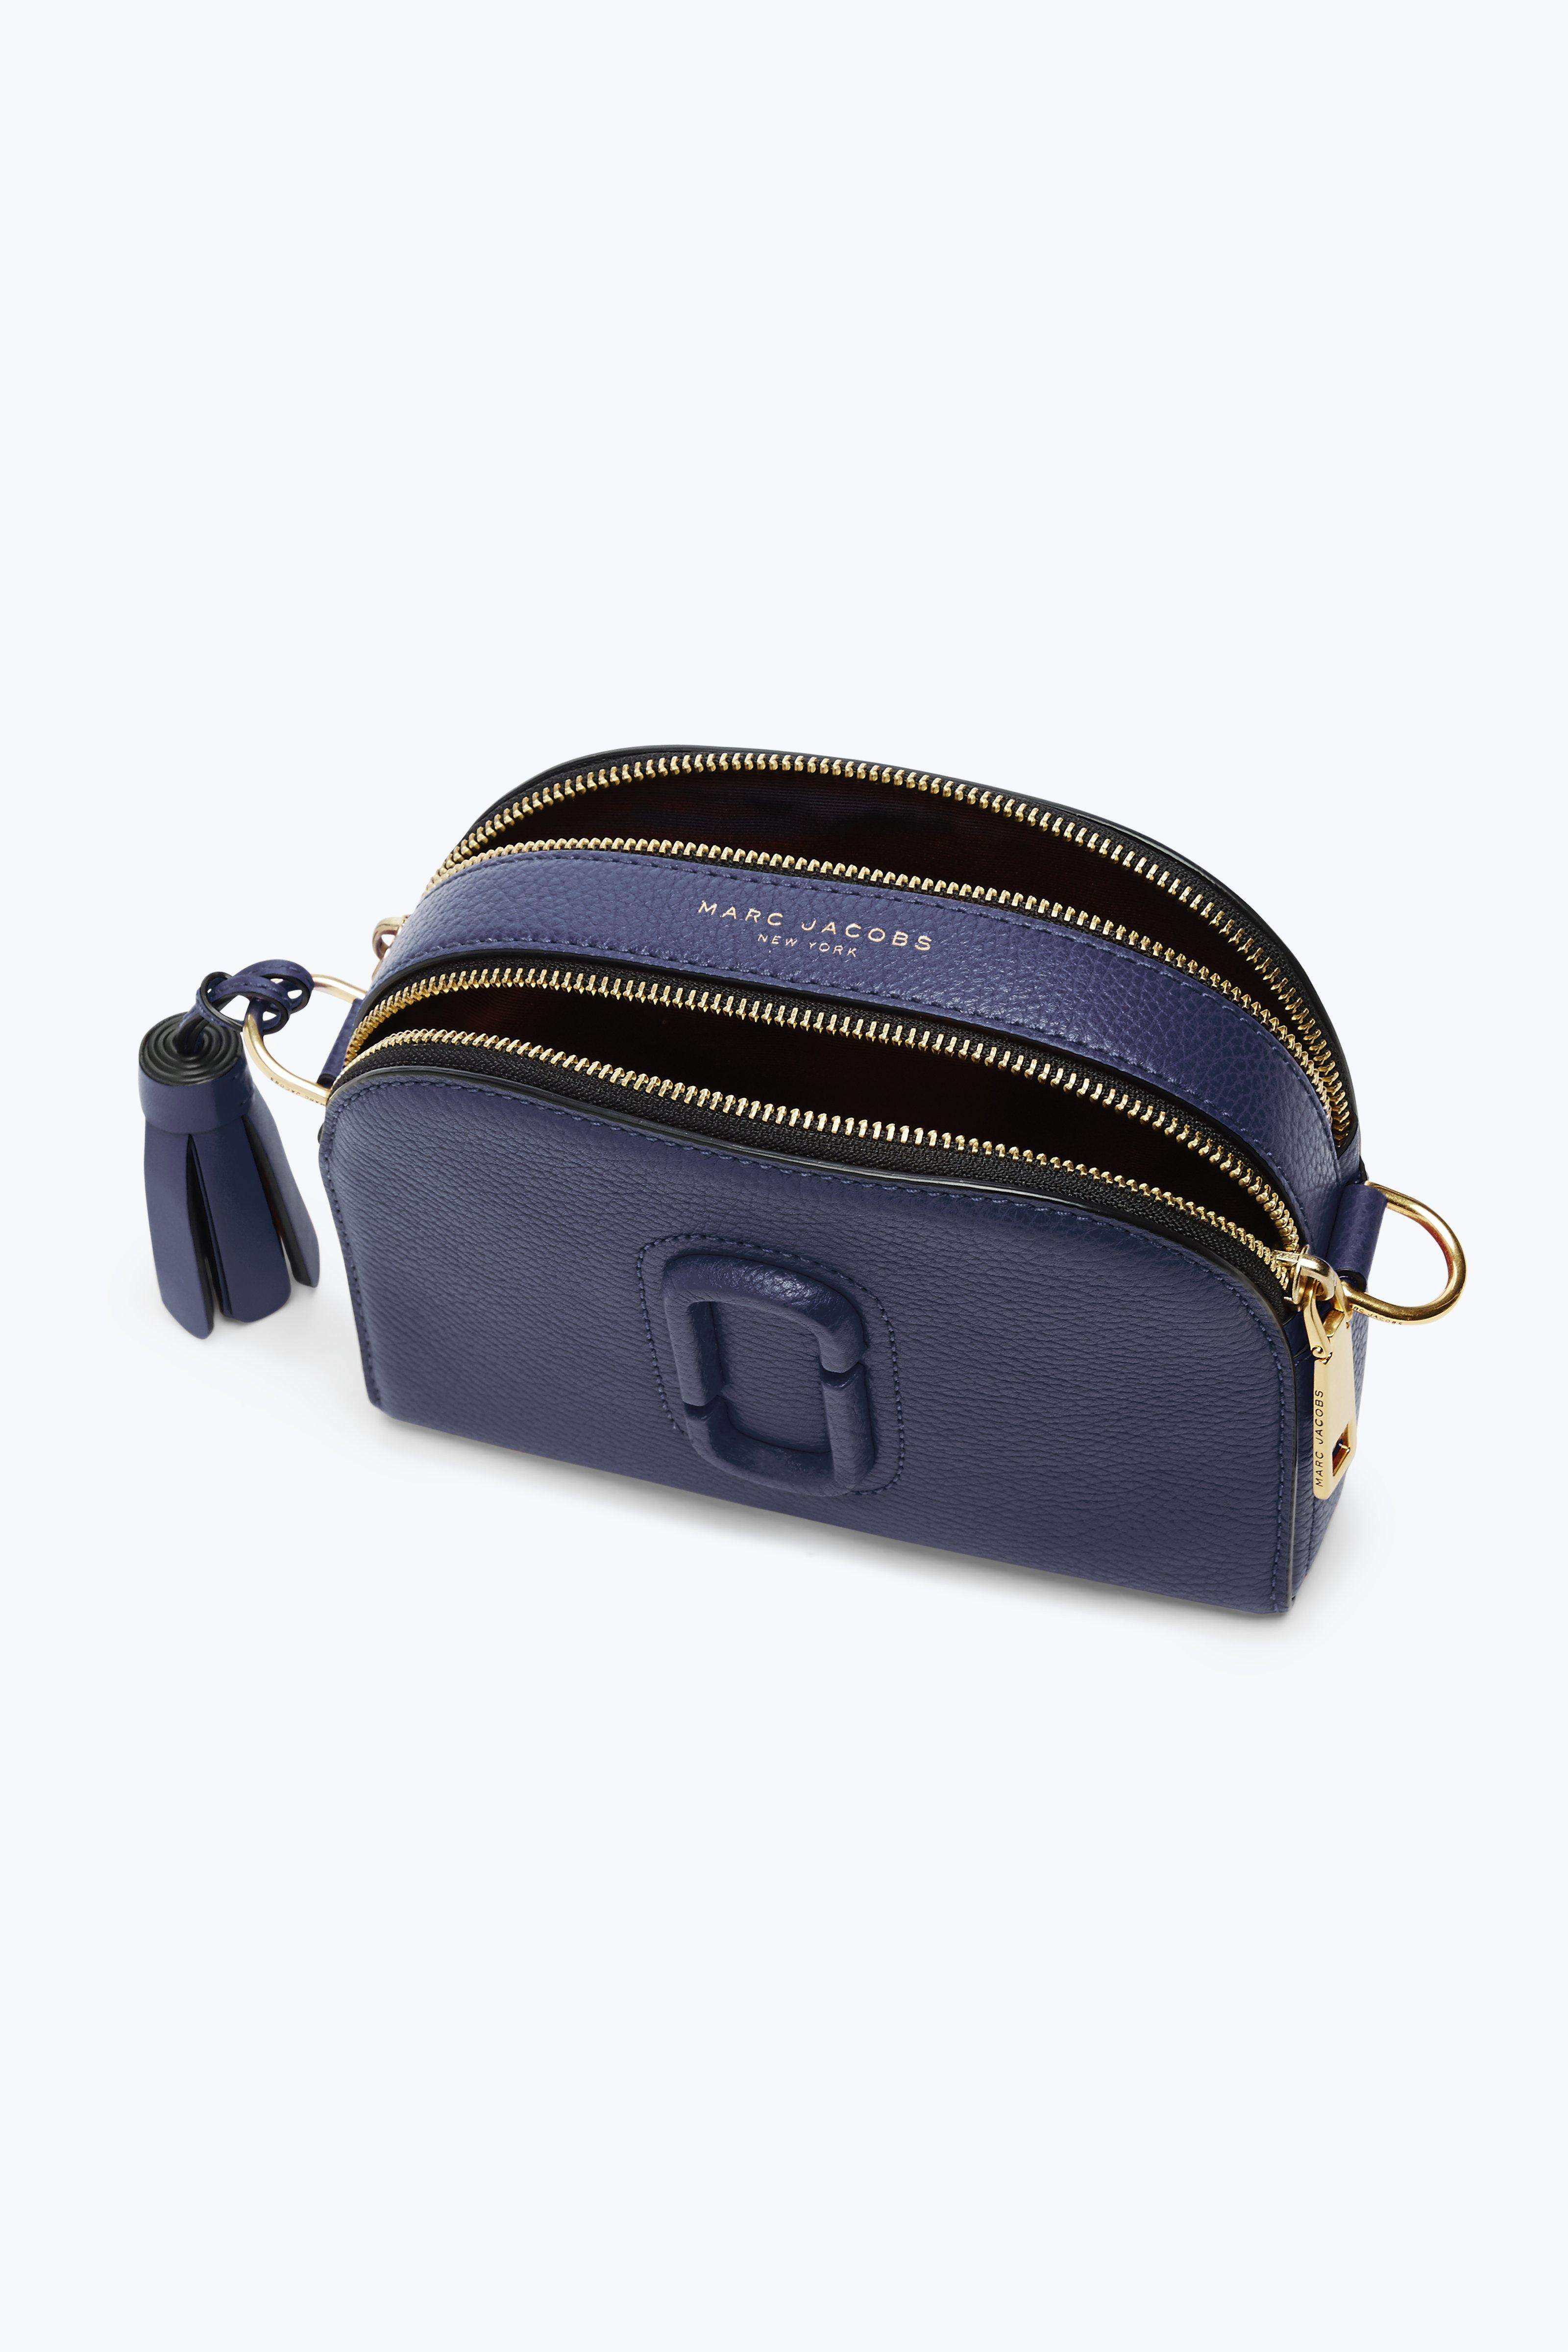 Marc Jacobs Blue Small Shutter Camera Bag Midnight Blue